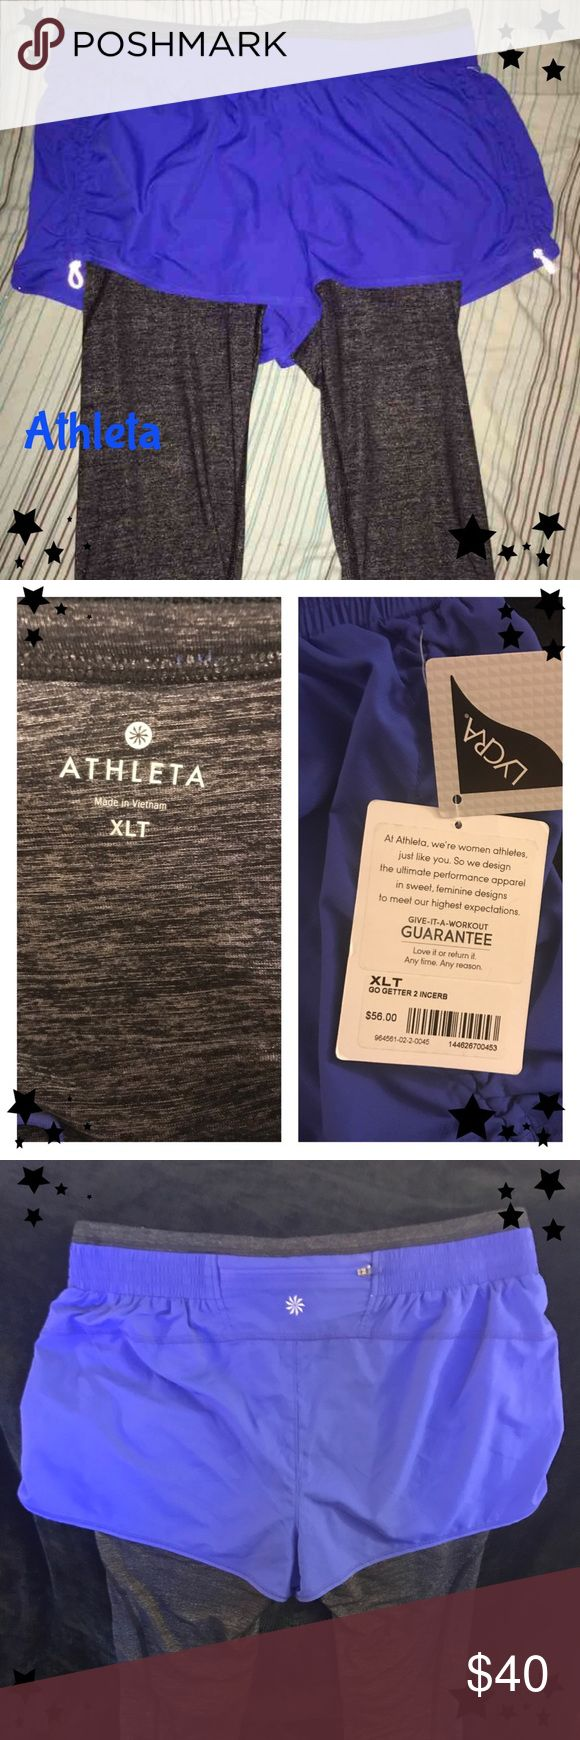 Athleta Go Getter shorts and leggings Athleta Go Getter beautiful blue shorts with charcoal leggings. Size XL but these run small. These are new with tags. I have to reposh because they were too small. These would fit a large better. Athleta Pants Track Pants & Joggers